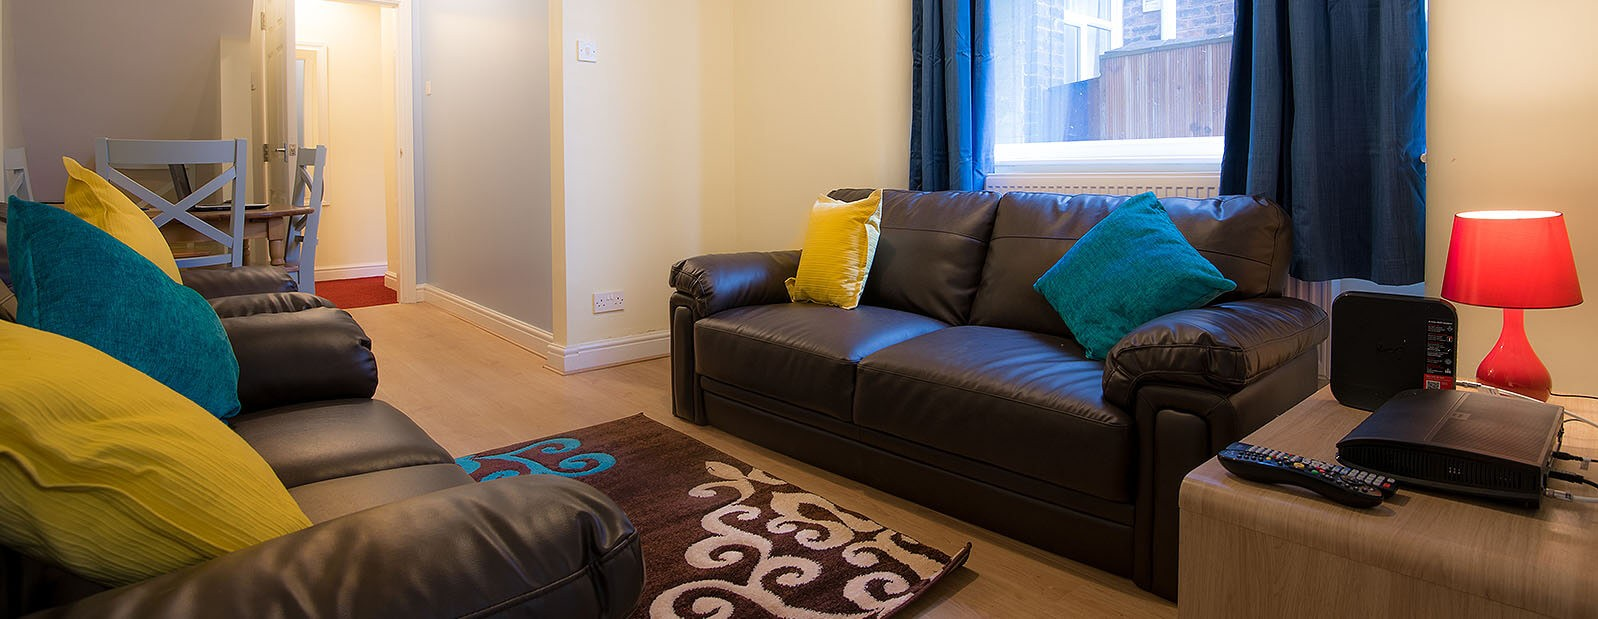 student accommodation & homes in shelton, stoke on trent